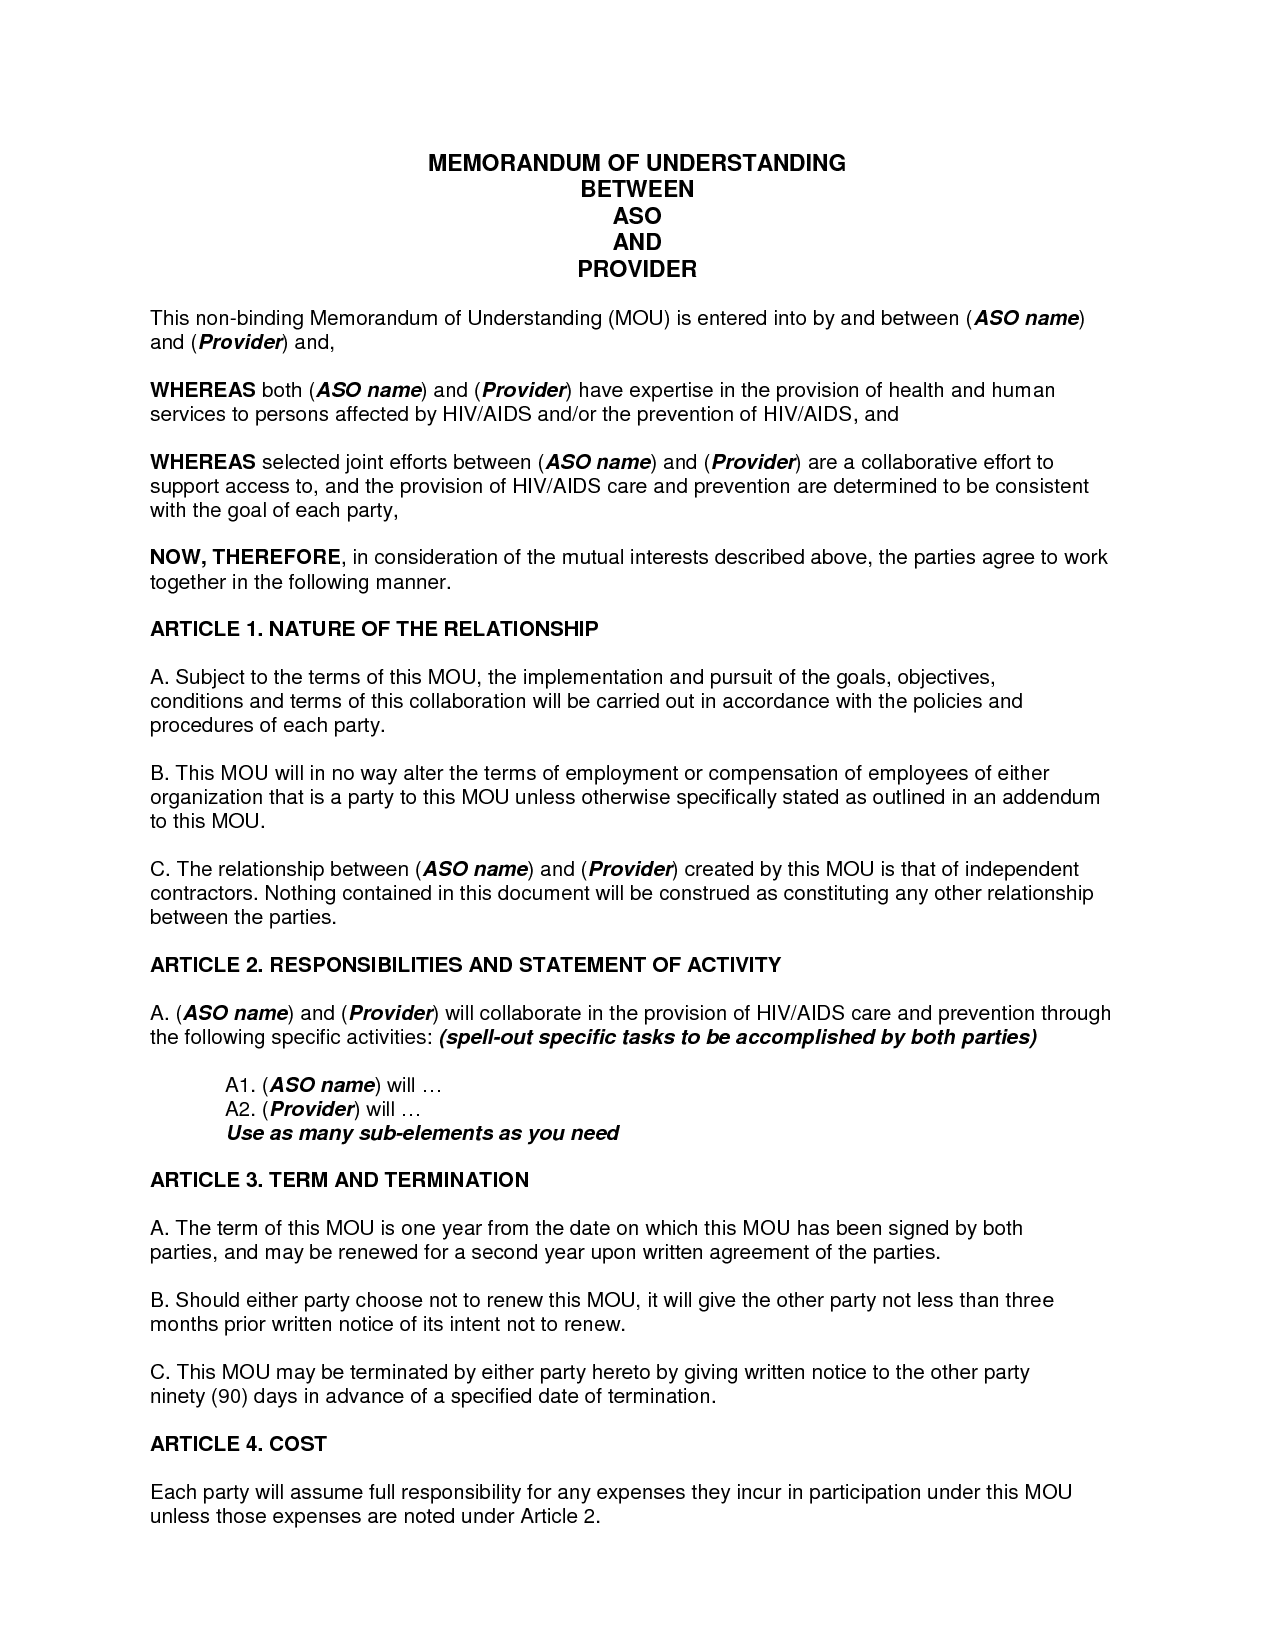 Sample memorandum of understanding business partnership doc by sample memorandum of understanding business partnership doc by m o u sample thecheapjerseys